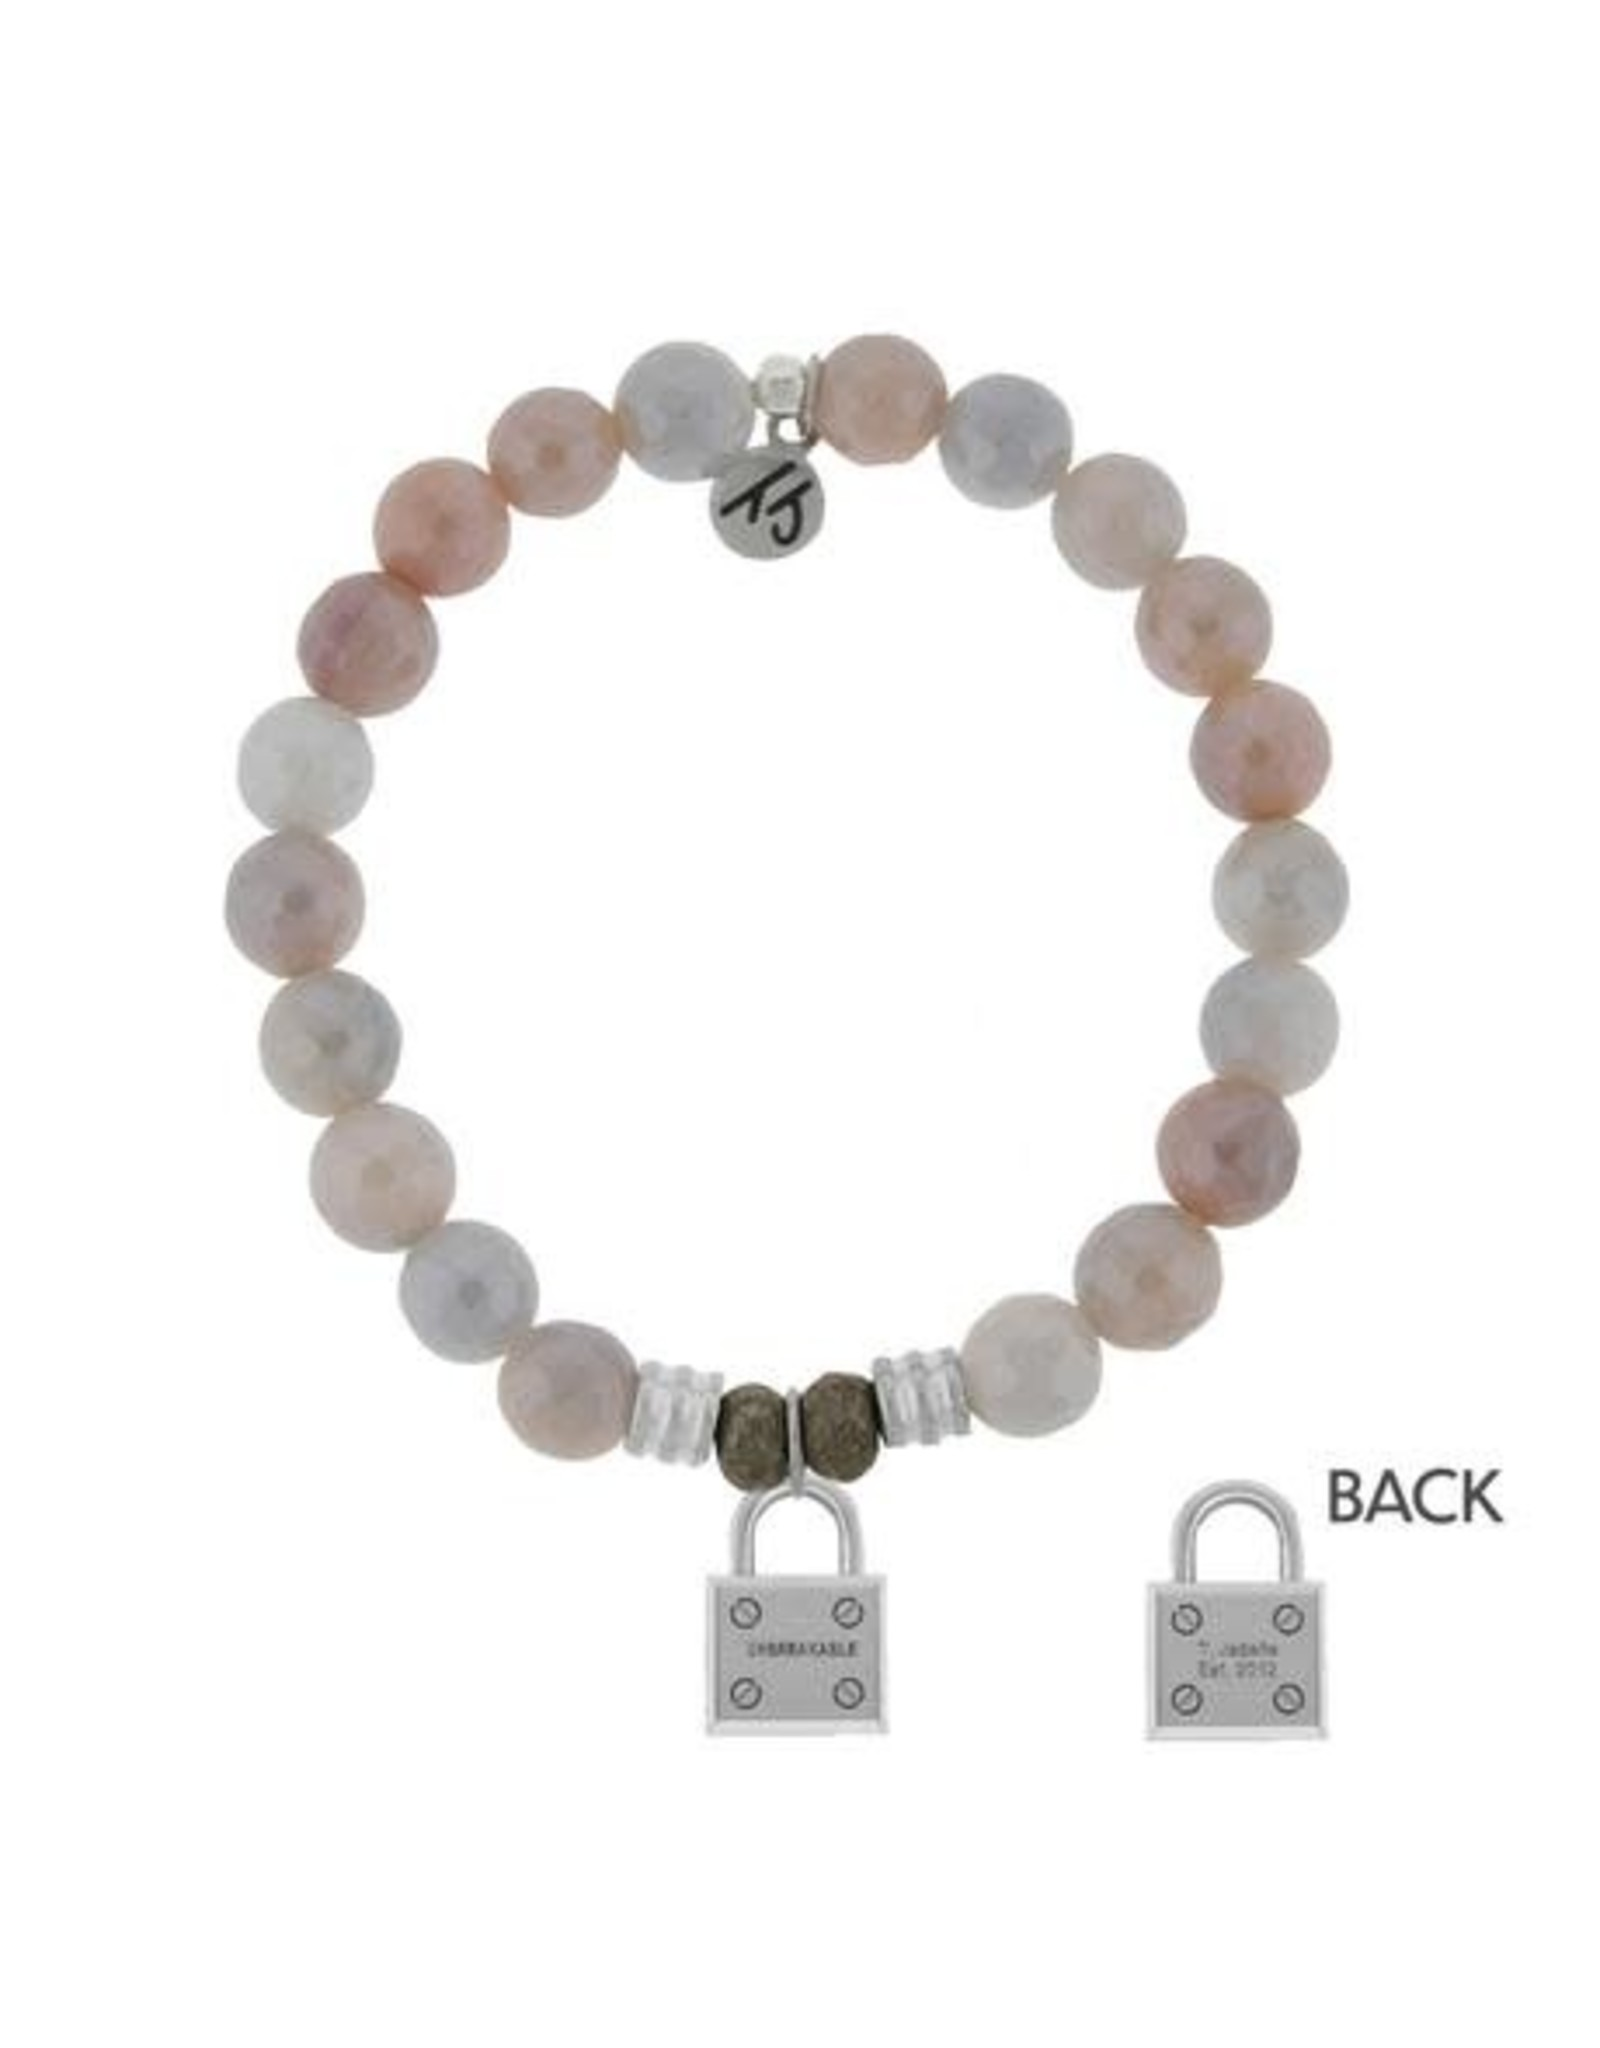 Unbreakable Sunstone Bracelet